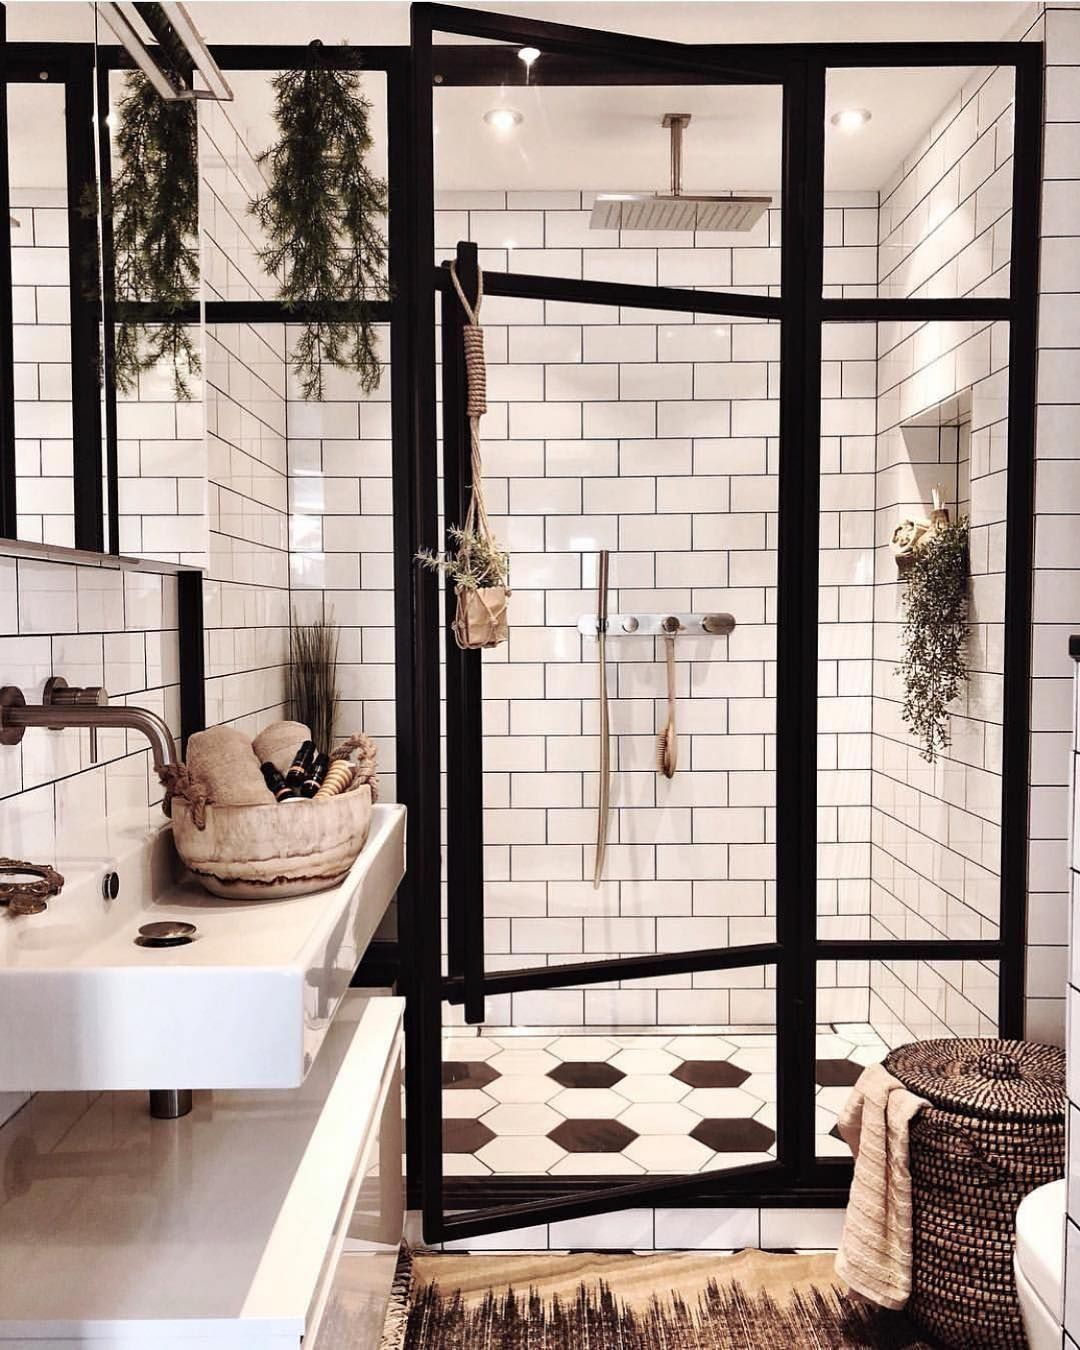 25 Tranquil Scandinavian Bathroom Decor To Get Rid Of Daily Stress - N10